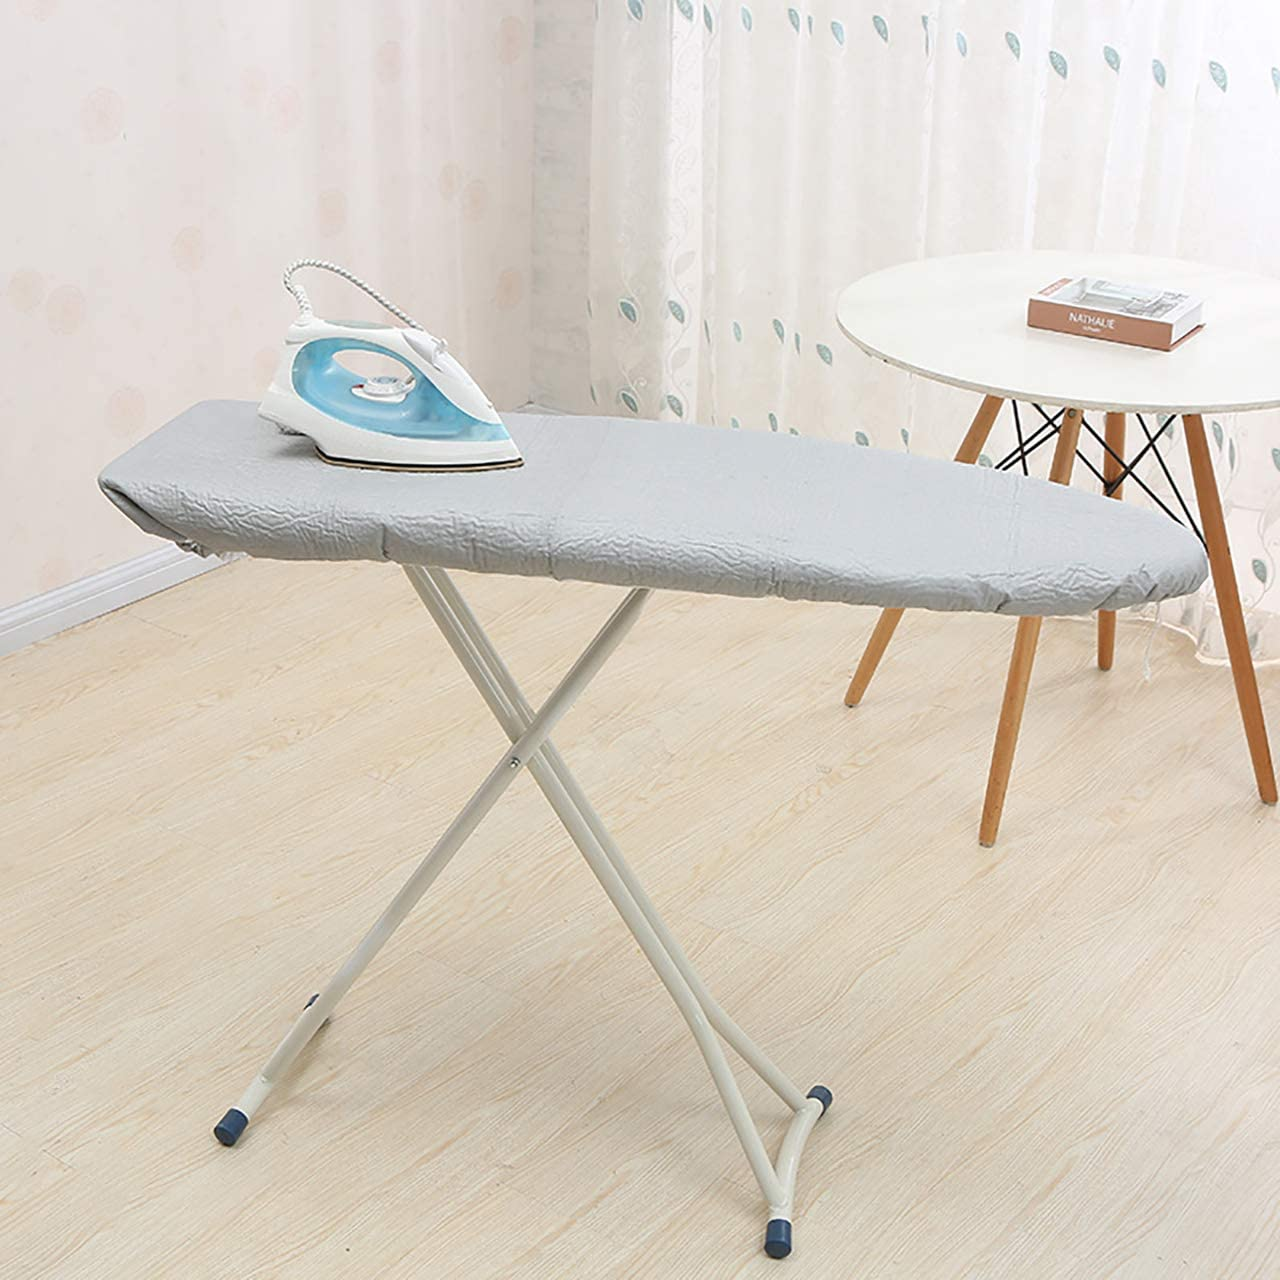 WGSY Ironing Board Cover with Silicone Coated 3 Layer Heat Resists Scorching /& Staining Stain Ironing Boards Protector with Tighten Drawstring 19x55 Fits Standard Size Ironing Boards